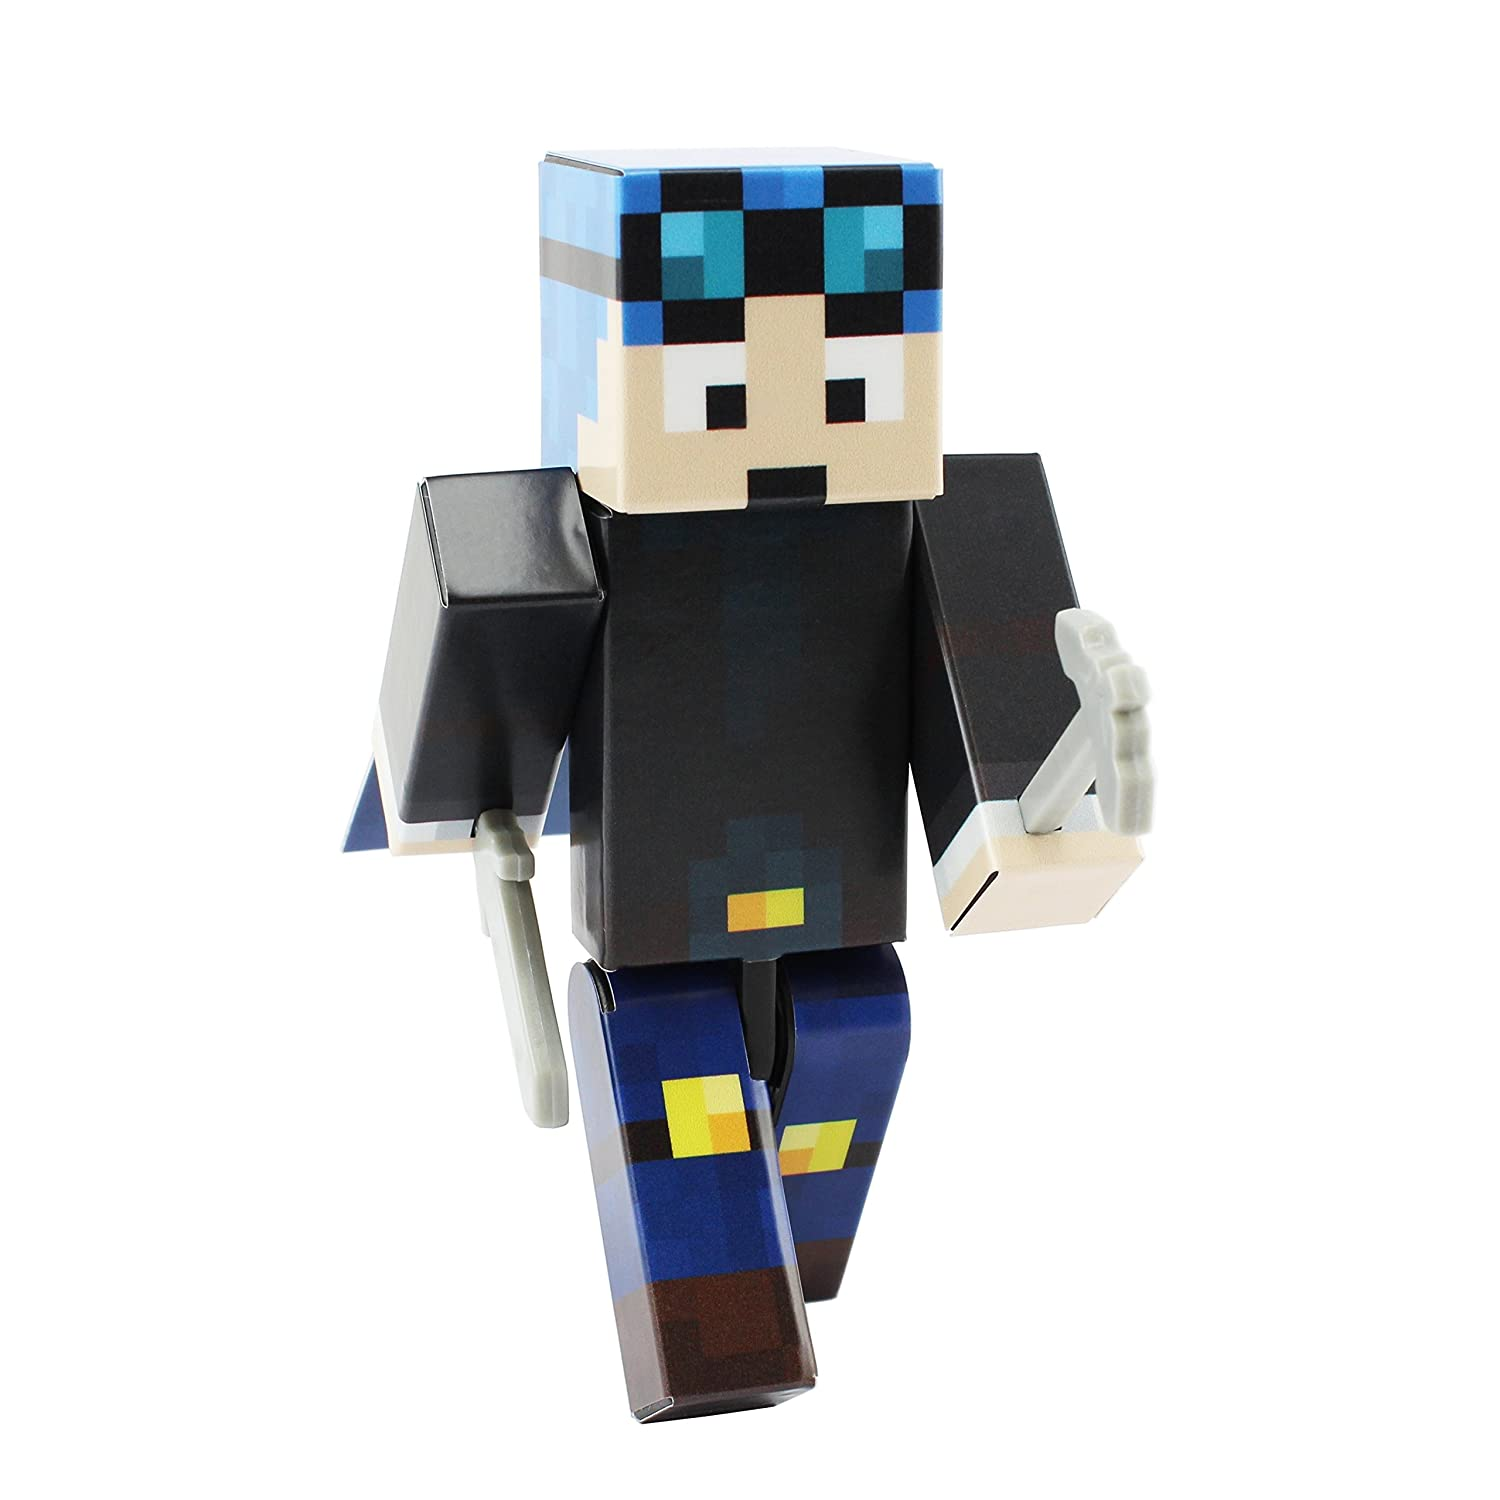 EnderToys Blue Hair Miner Boy Action Figure Toy, 4 Inch Custom Series  Figurines [Not an Official Minecraft Product]